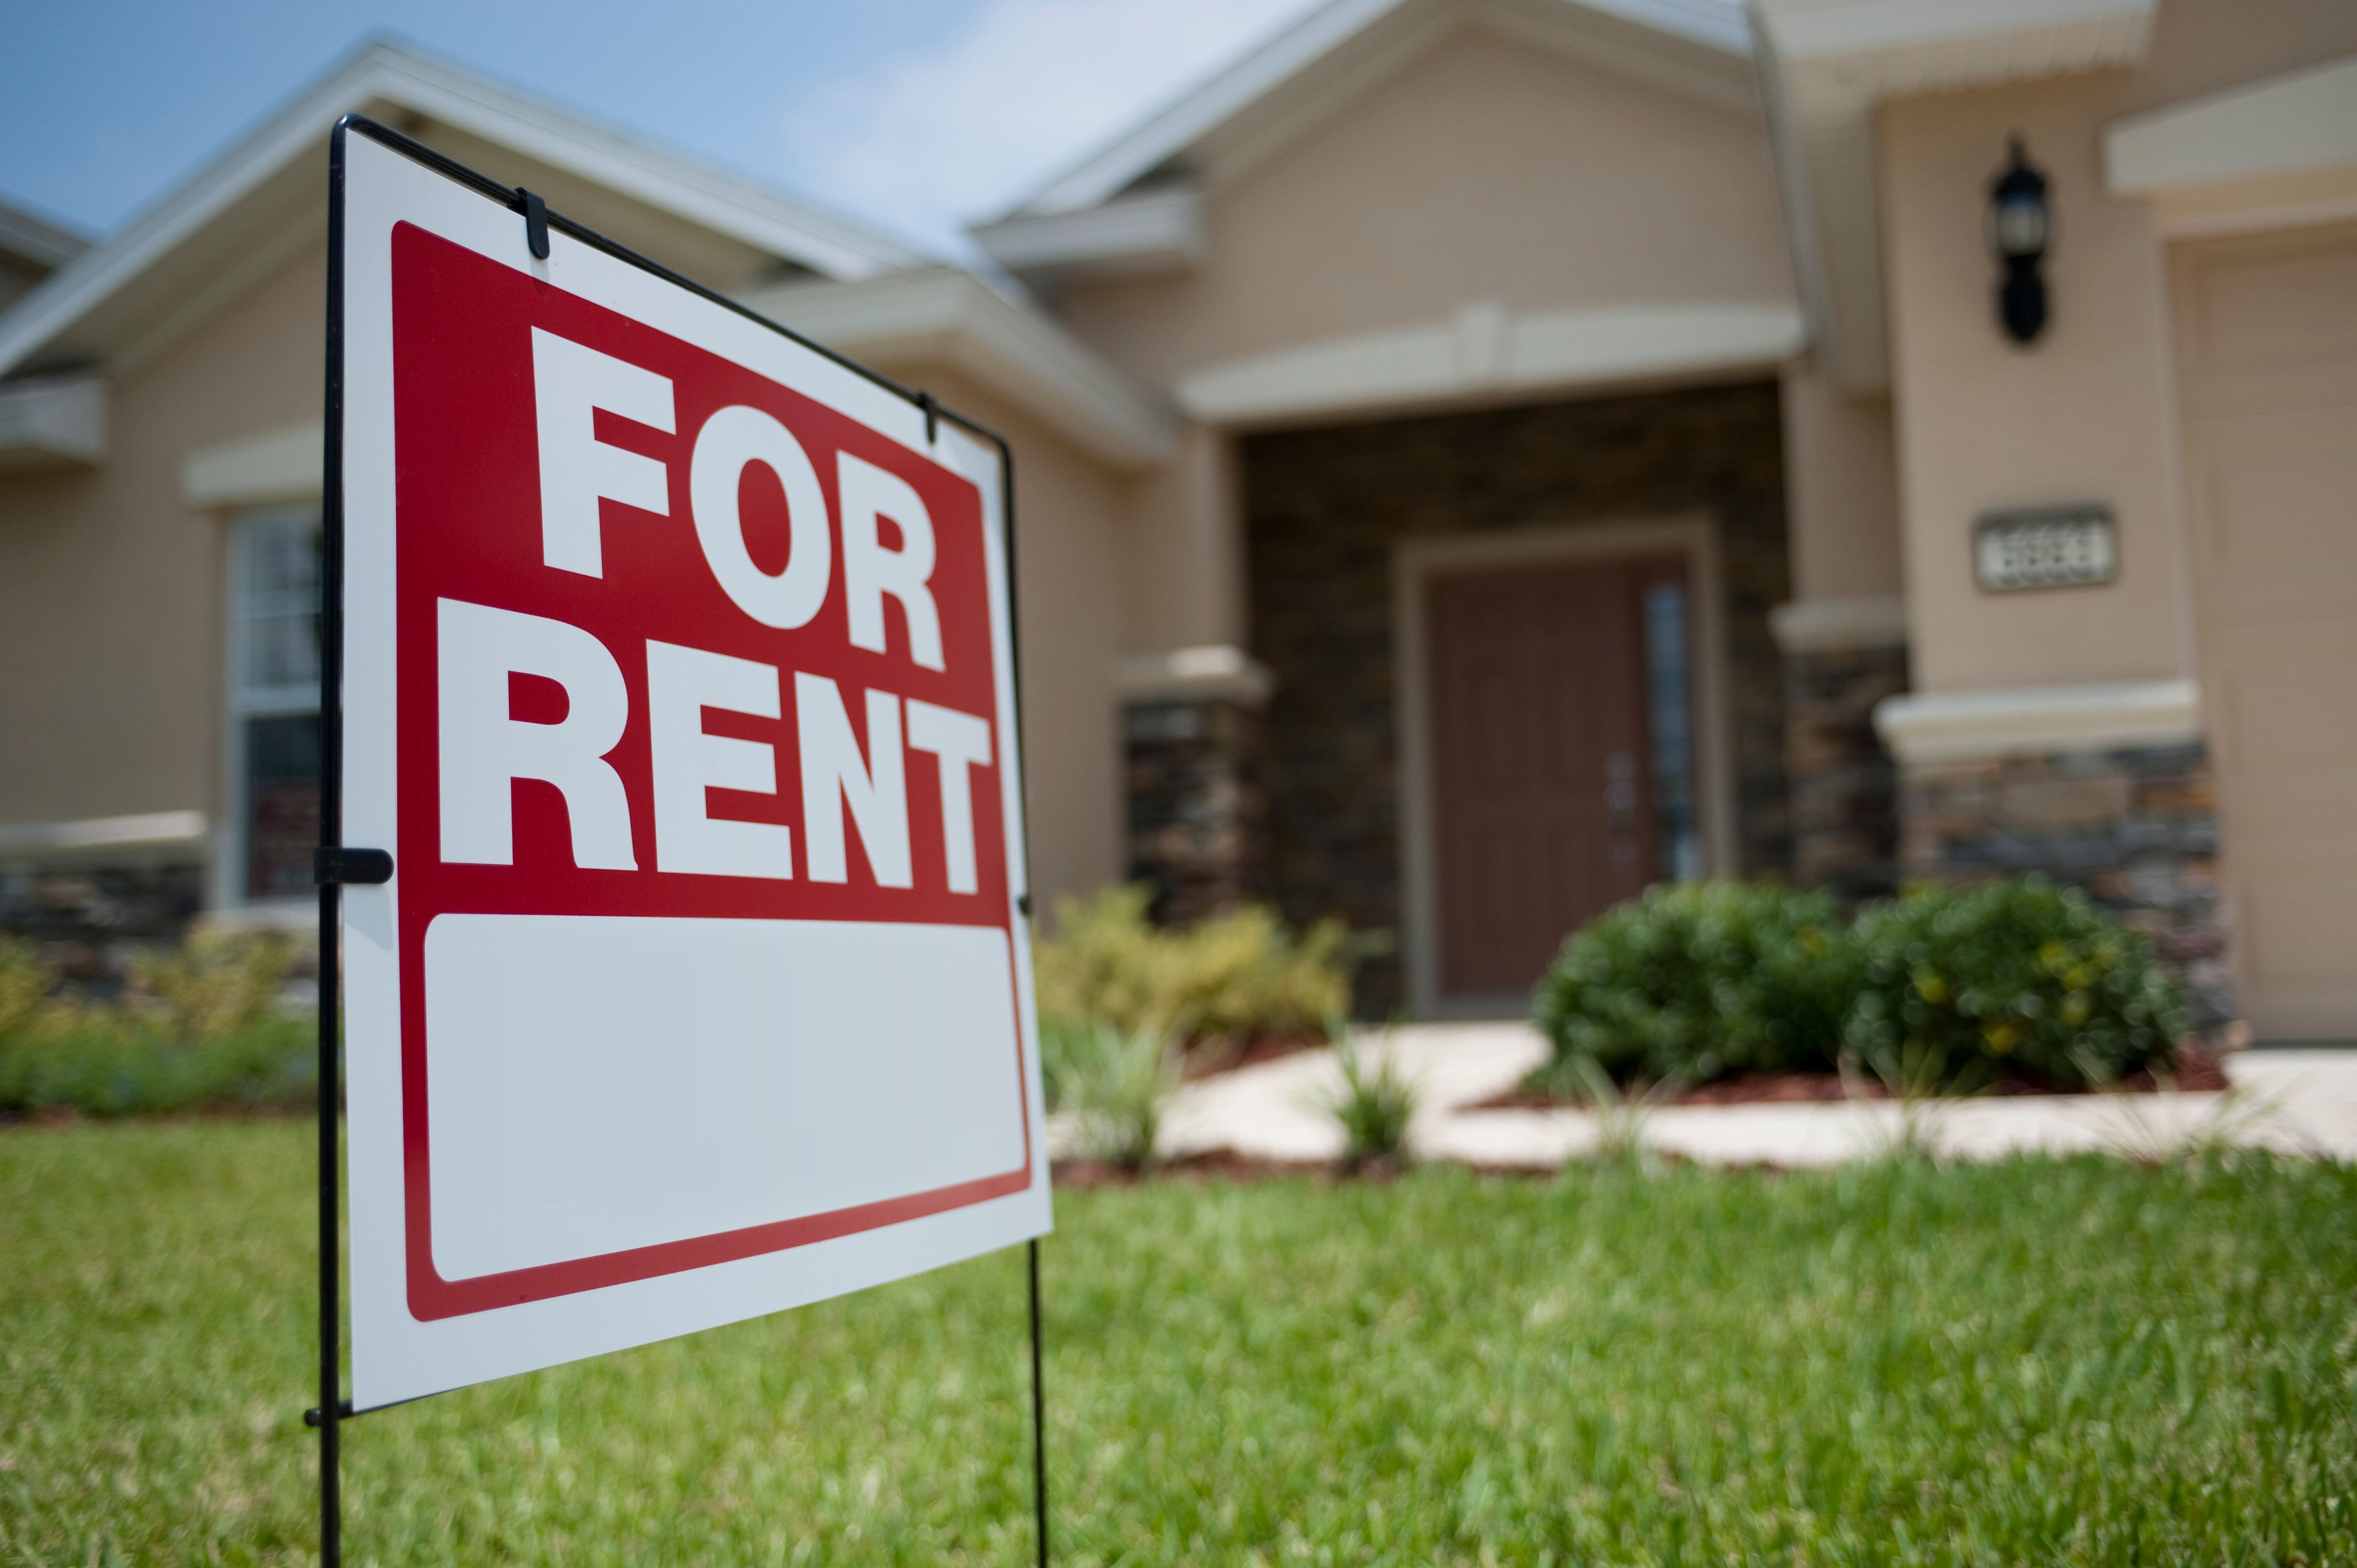 For Rent sign in front of new house